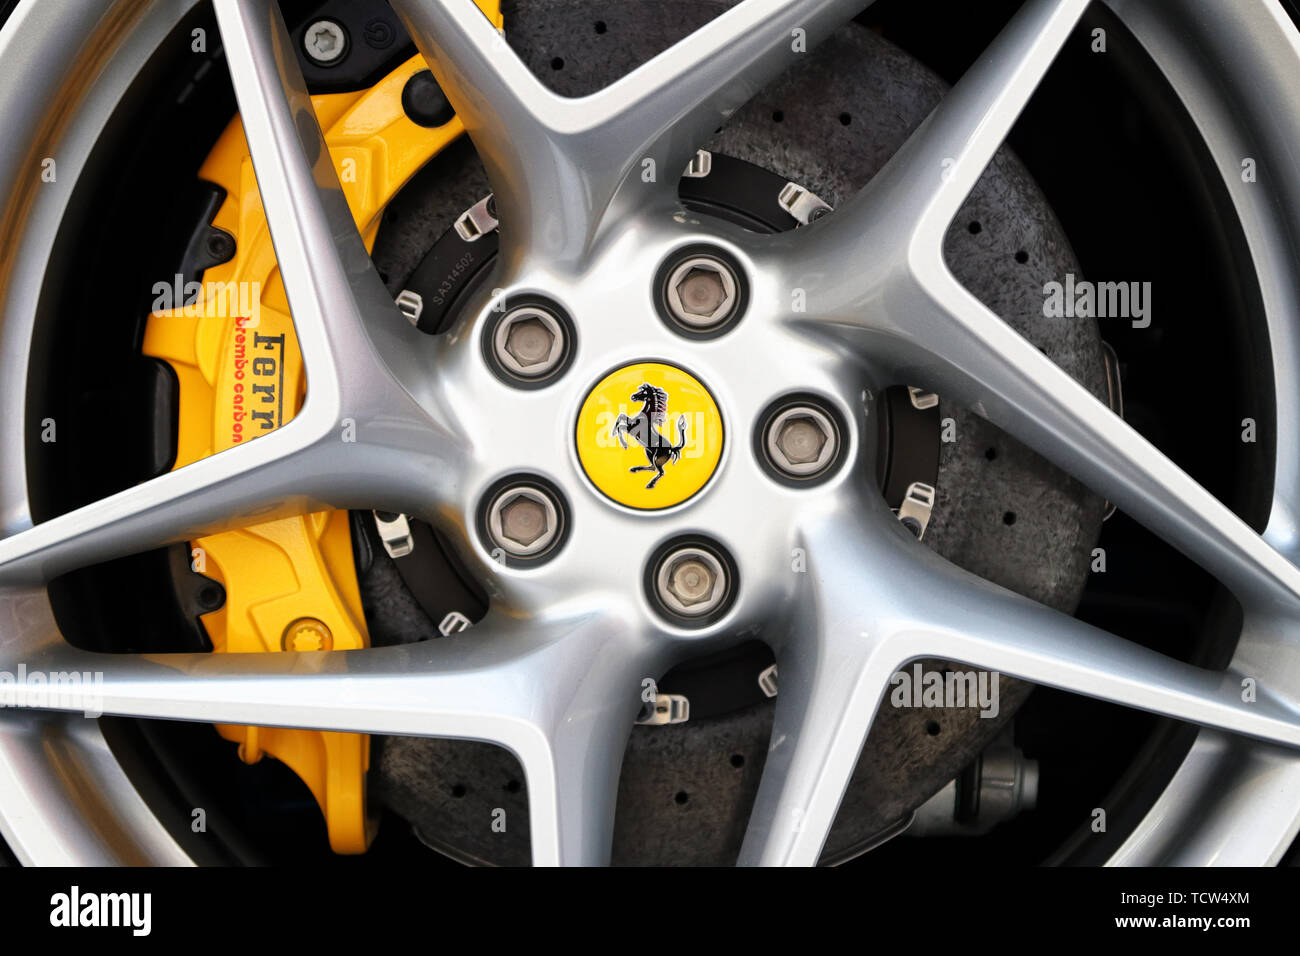 MODENA, ITALY, May 2019 - Motor Valley Fest exhibition, Ferrari F8 Tributo wheel detail - Stock Image